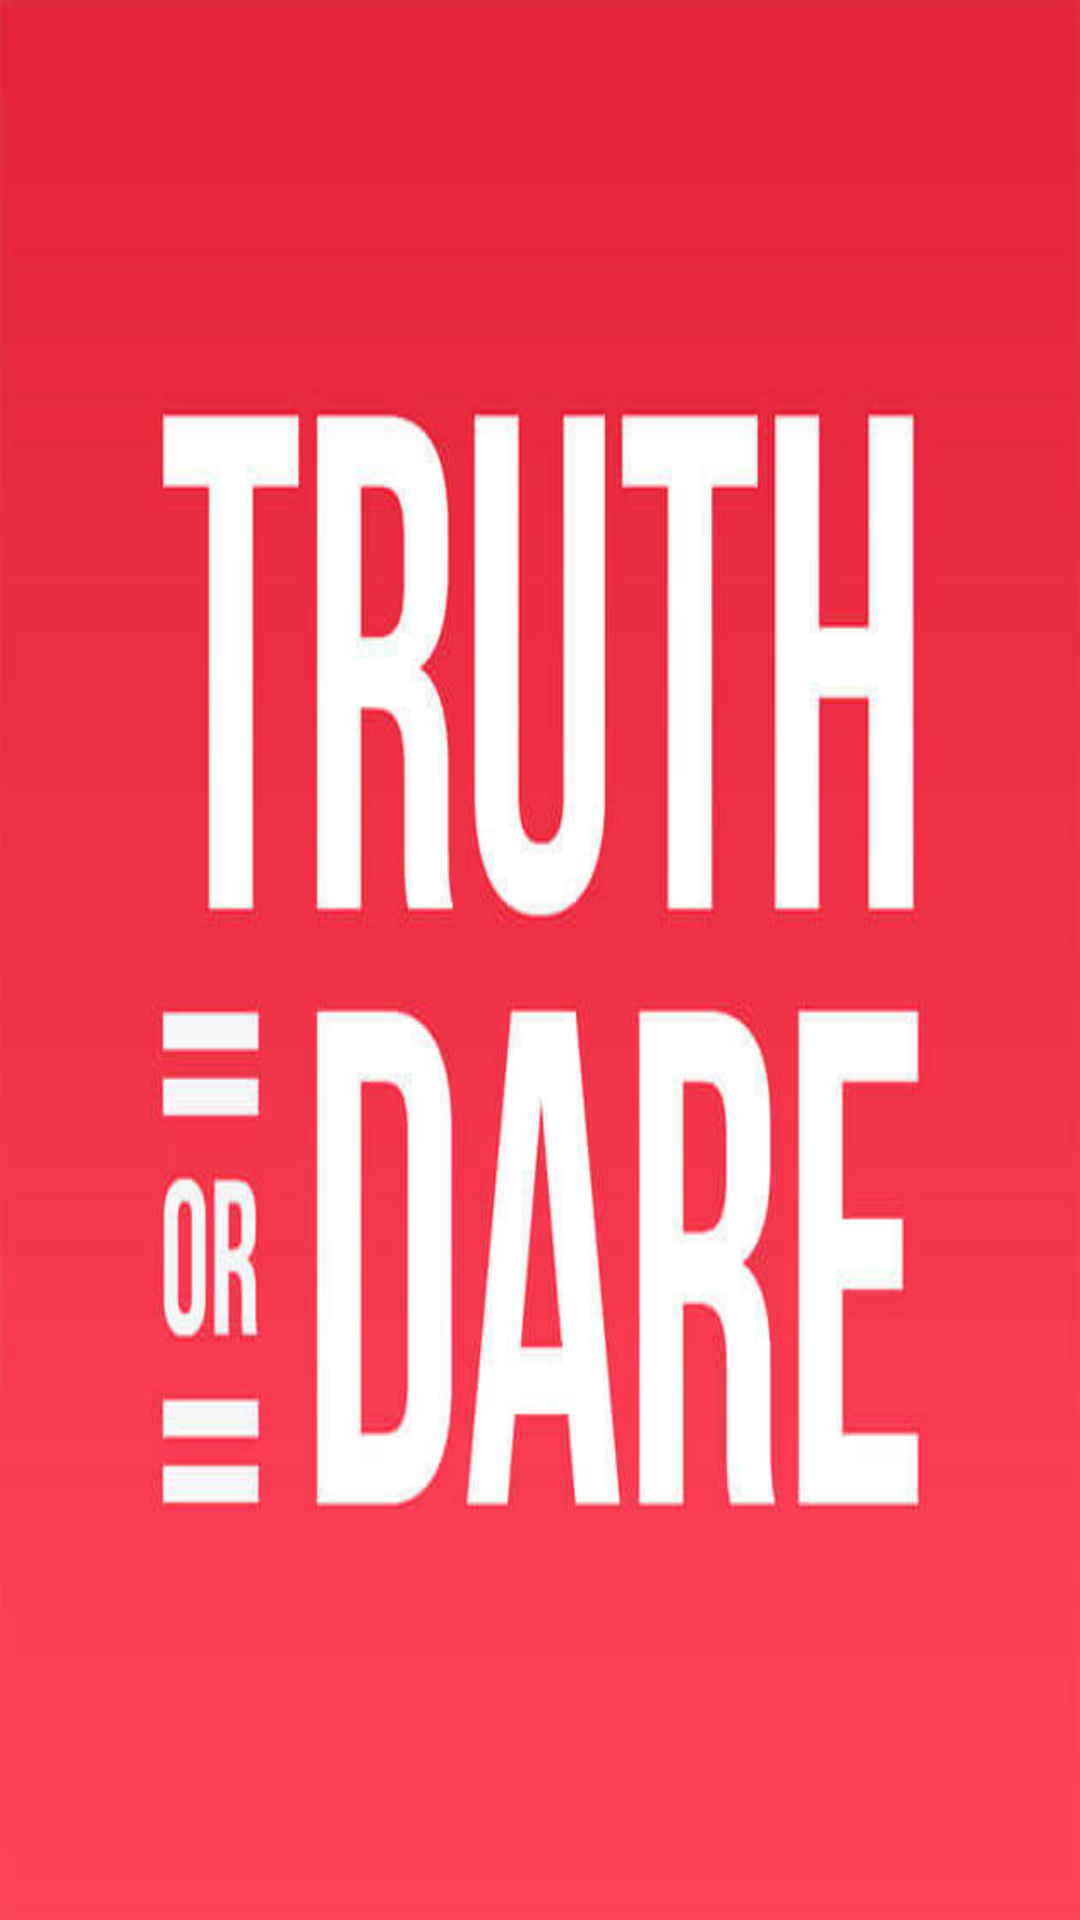 Truth or Dare - Bottle game